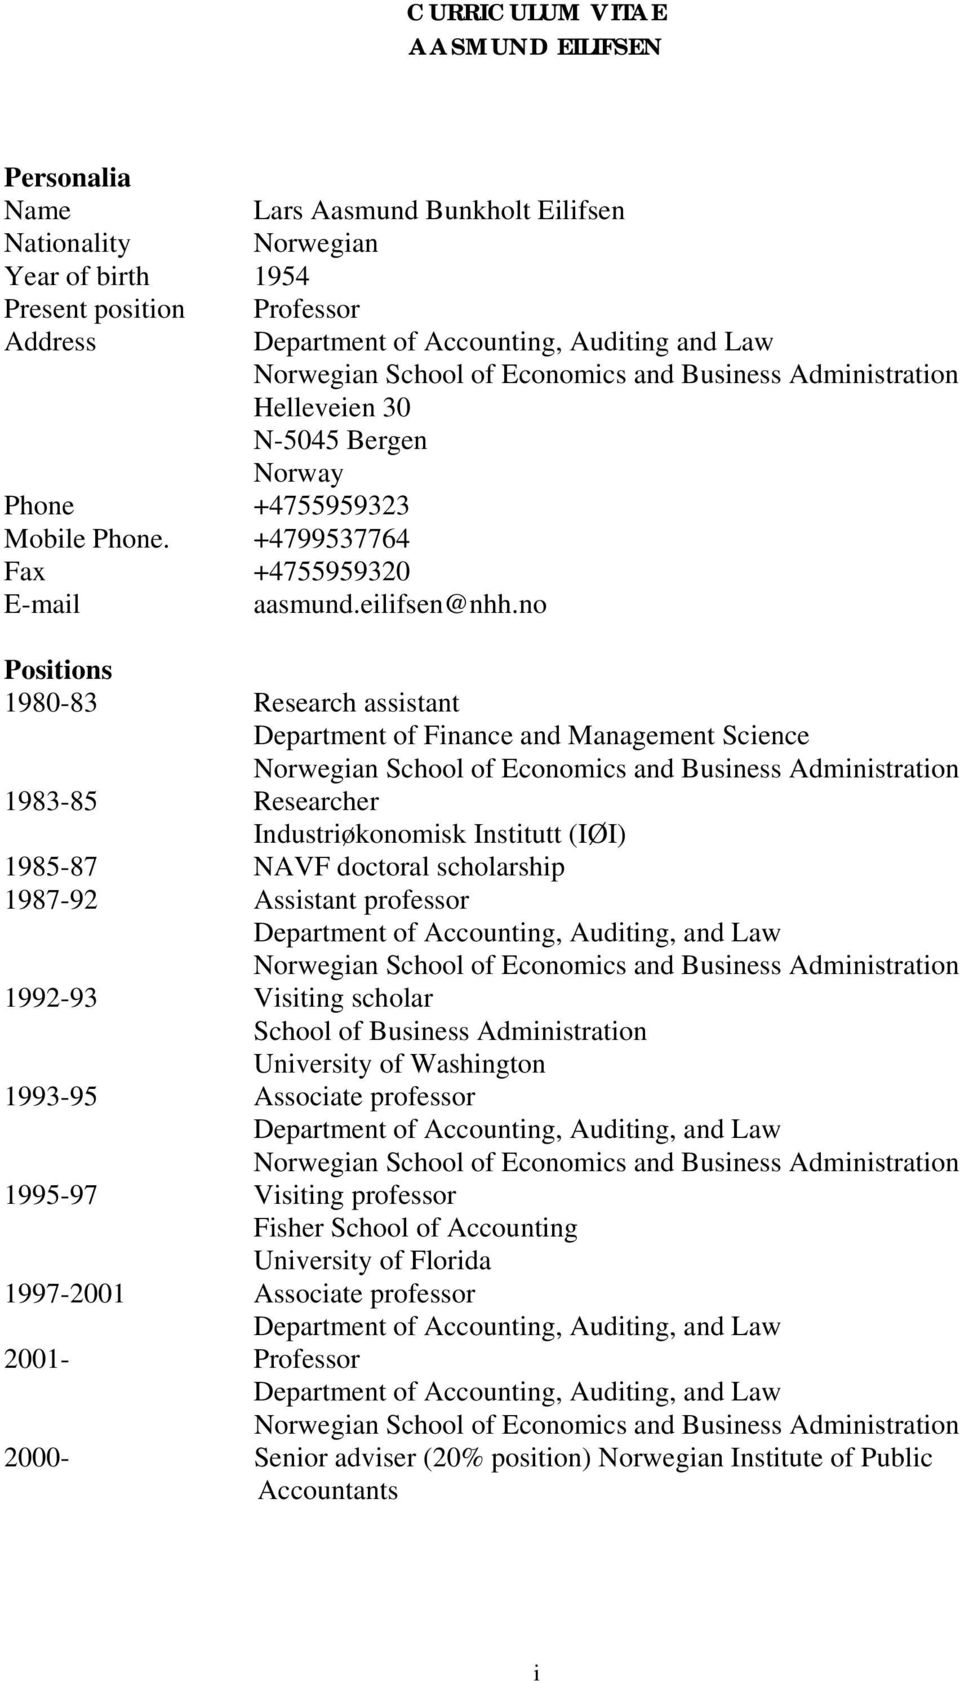 no Positions 1980-83 Research assistant Department of Finance and Management Science 1983-85 Researcher Industriøkonomisk Institutt (IØI) 1985-87 NAVF doctoral scholarship 1987-92 Assistant professor